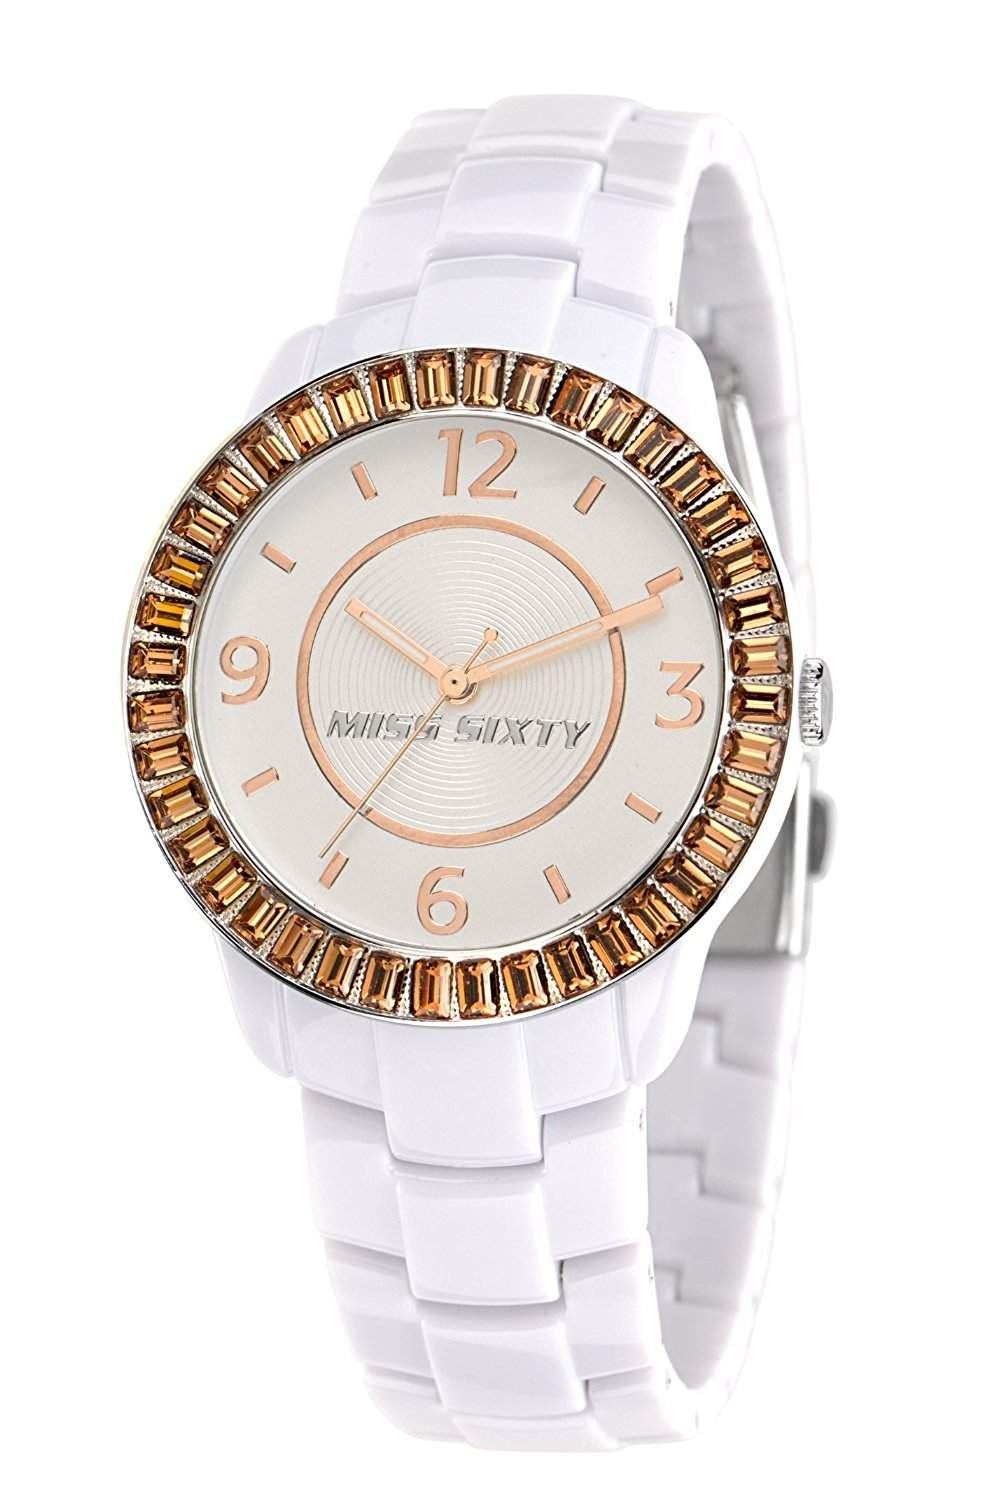 Miss Sixty Damen-Armbanduhr Analog Ceramic R0753118503